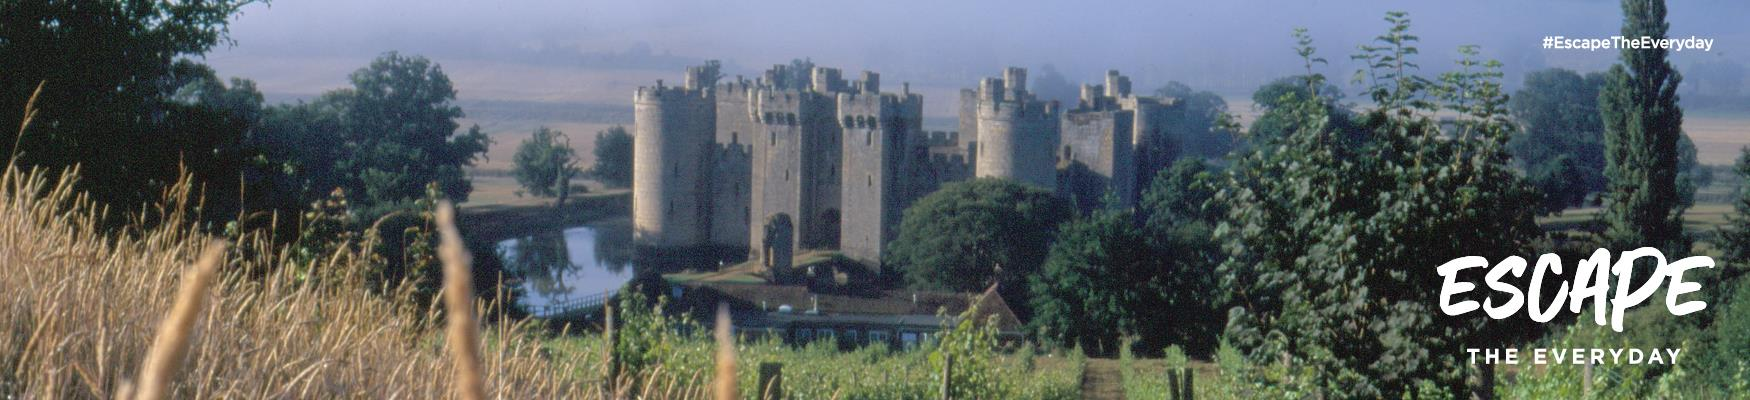 Bodiam Castle in East Sussex, viewed from a wheatfield uphill.